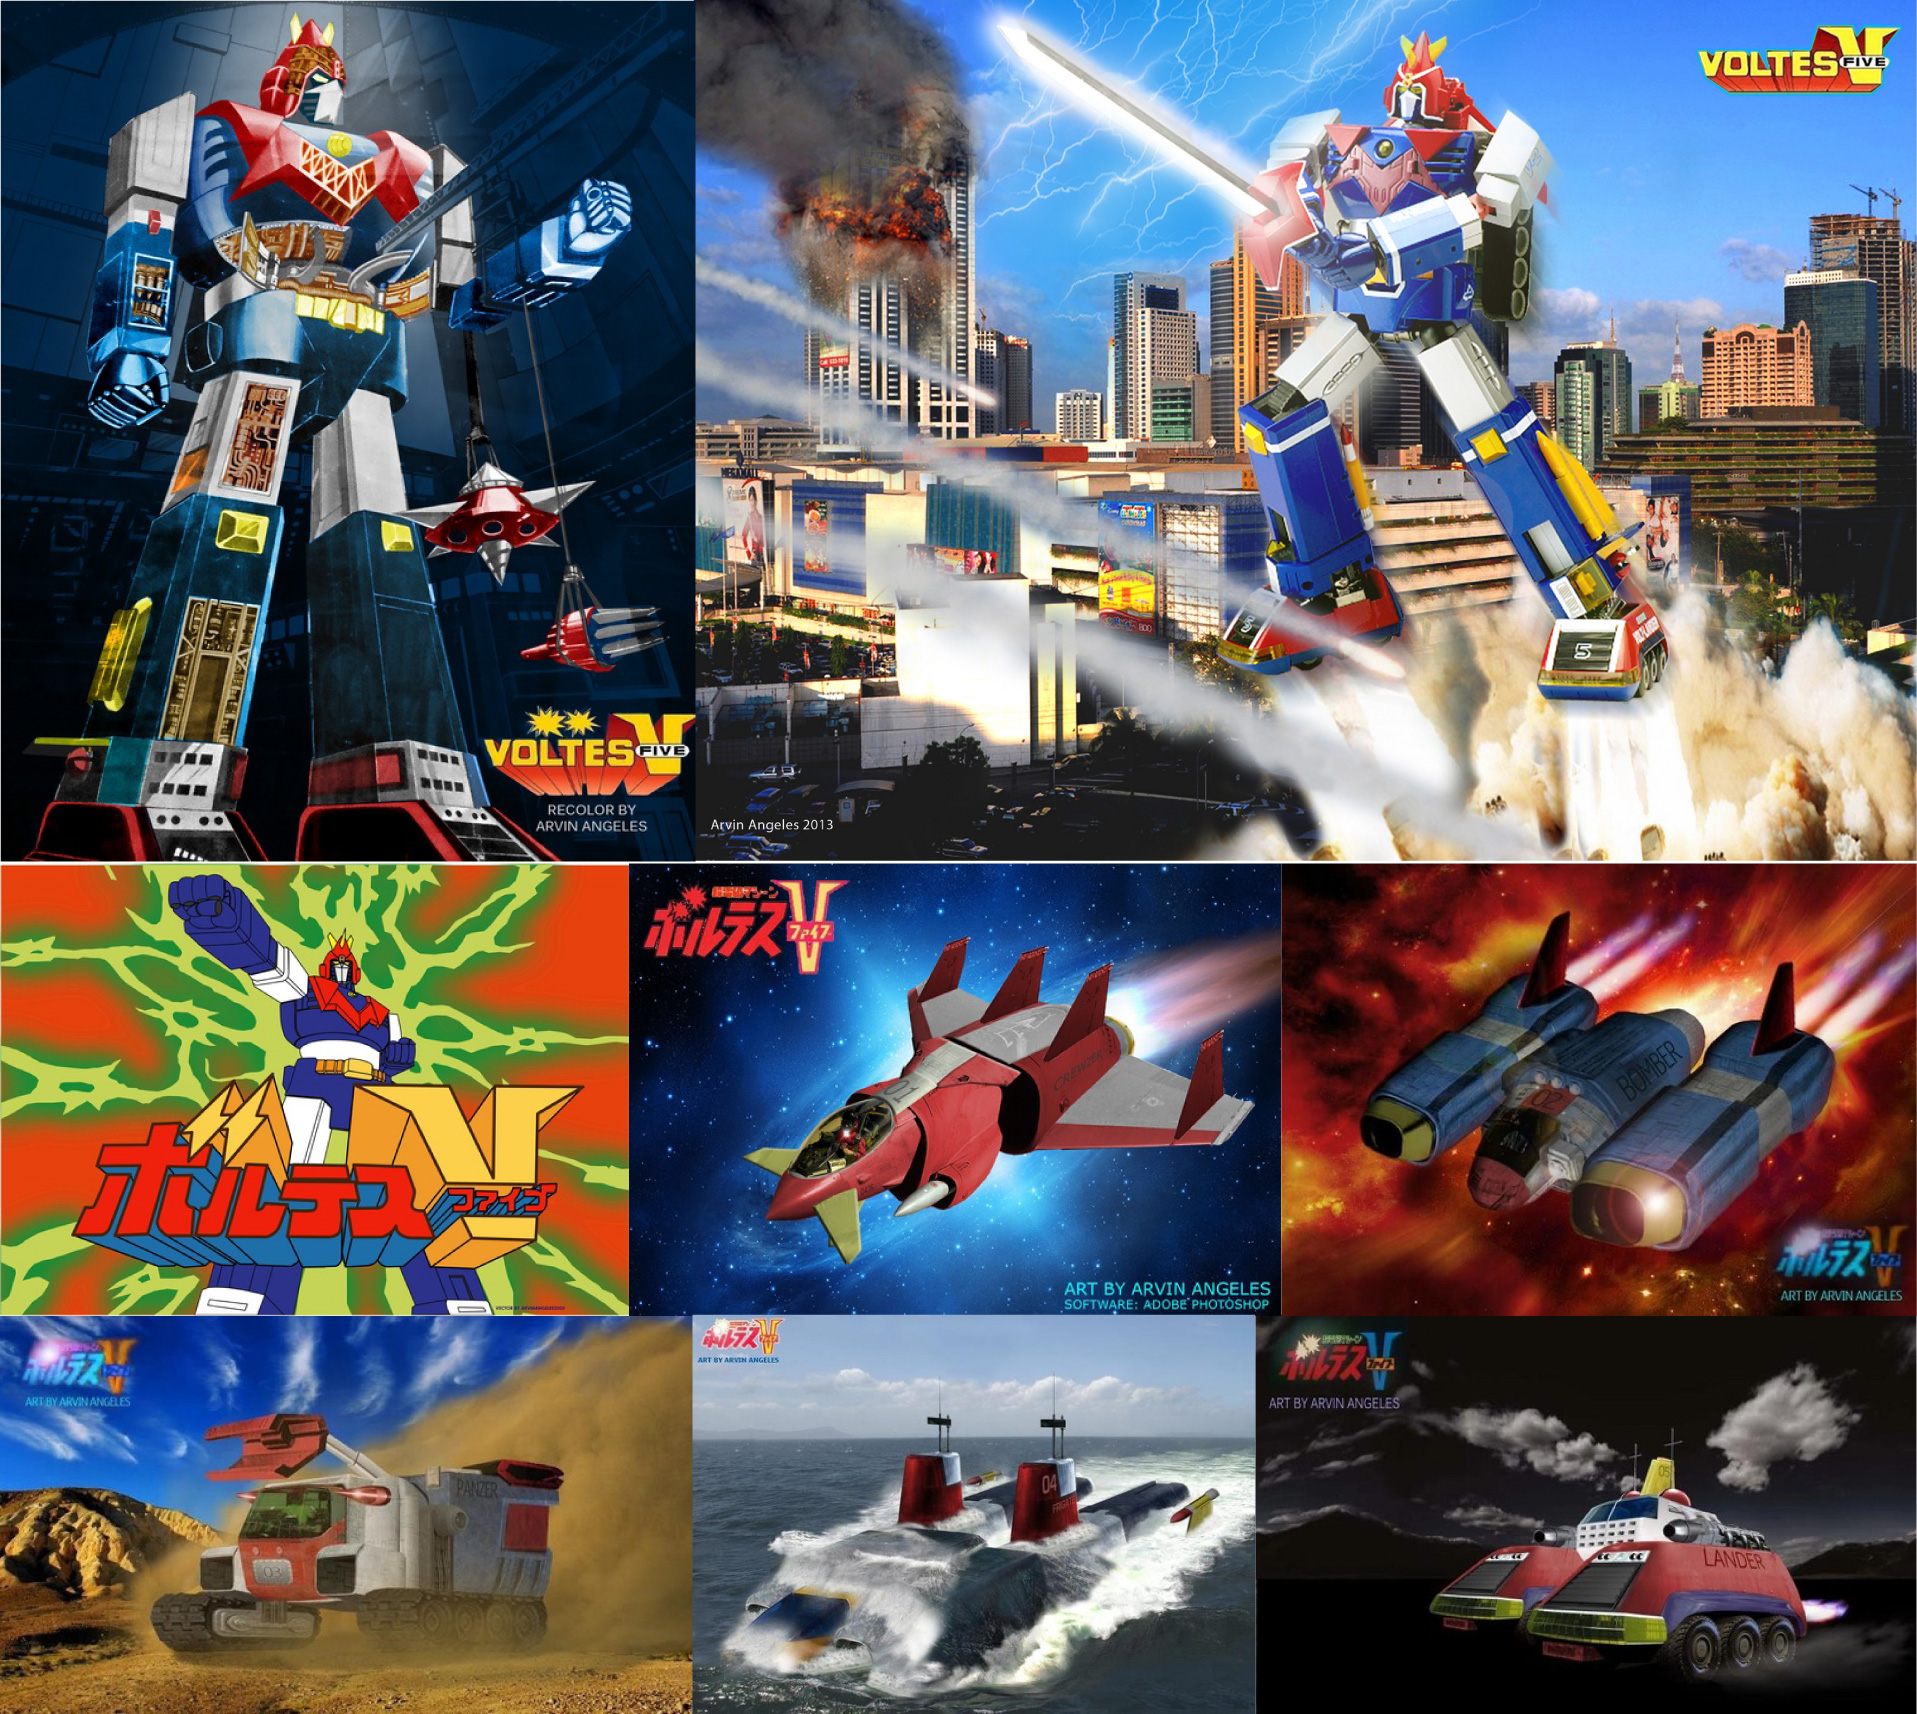 Voltes-V-artworks-wallpaper-wp44012579